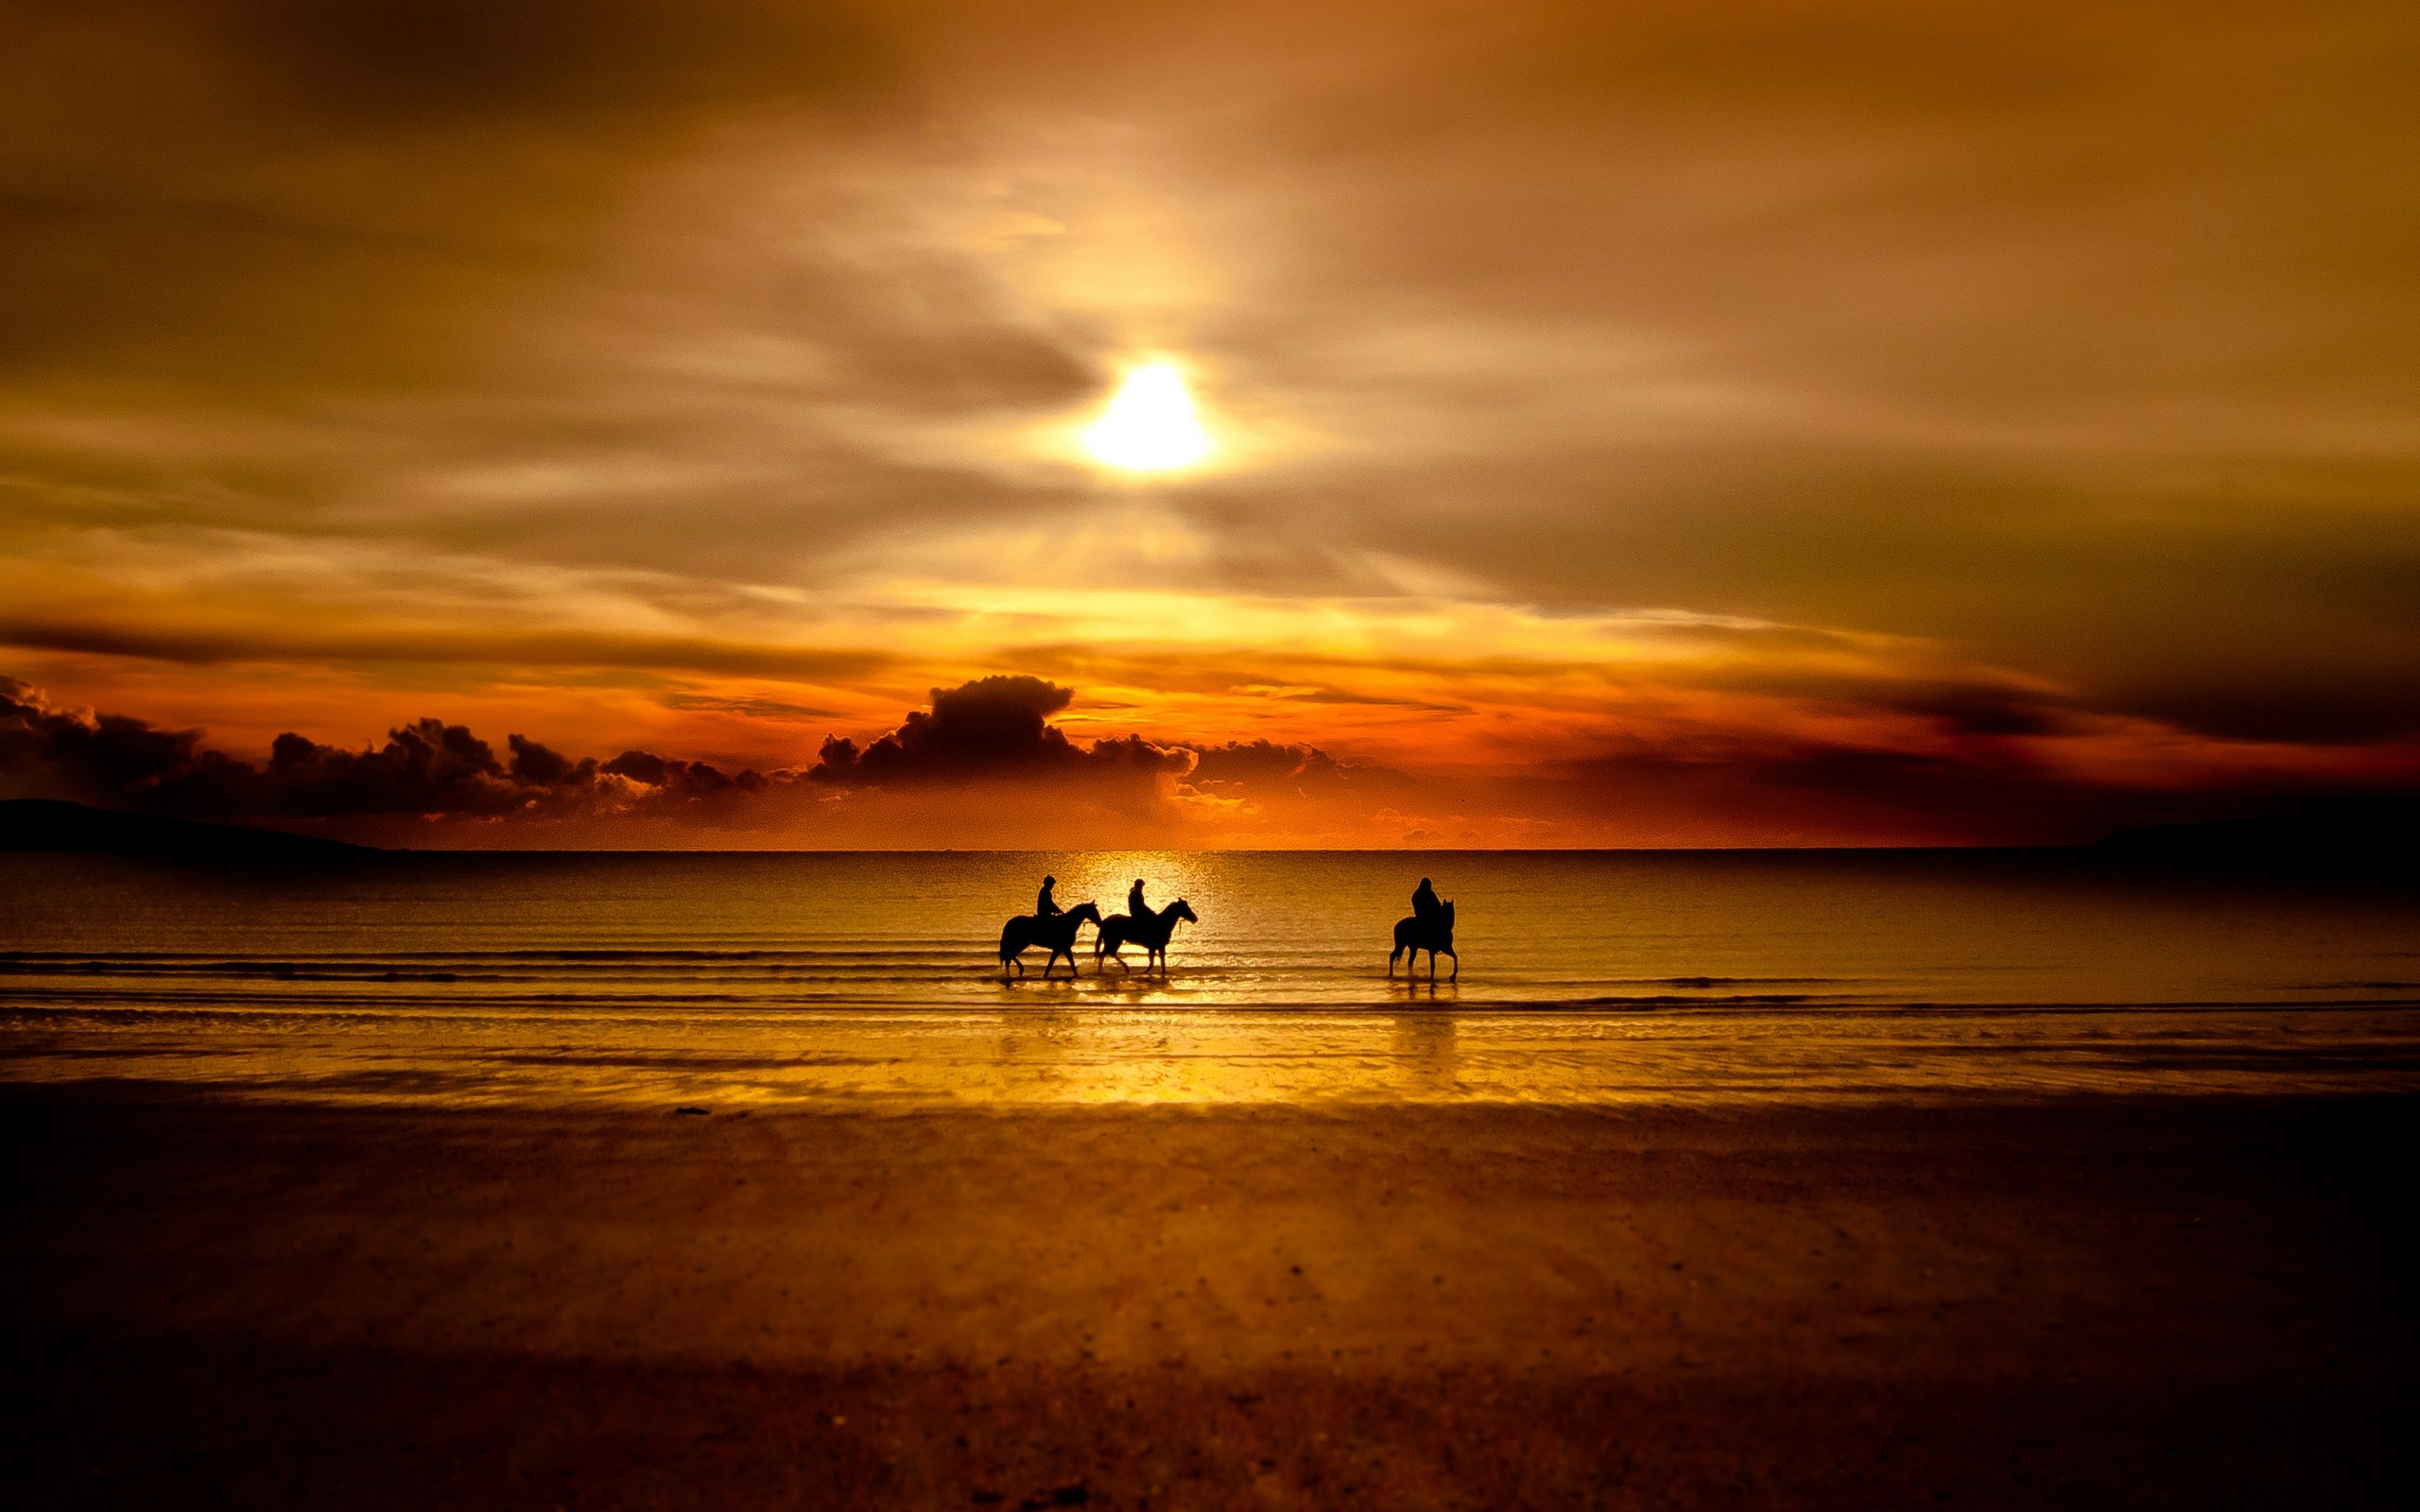 Horse Silhouette Sunset Photography Wallpaper Horse Walking On Beach 2560x1600 Wallpaper Teahub Io